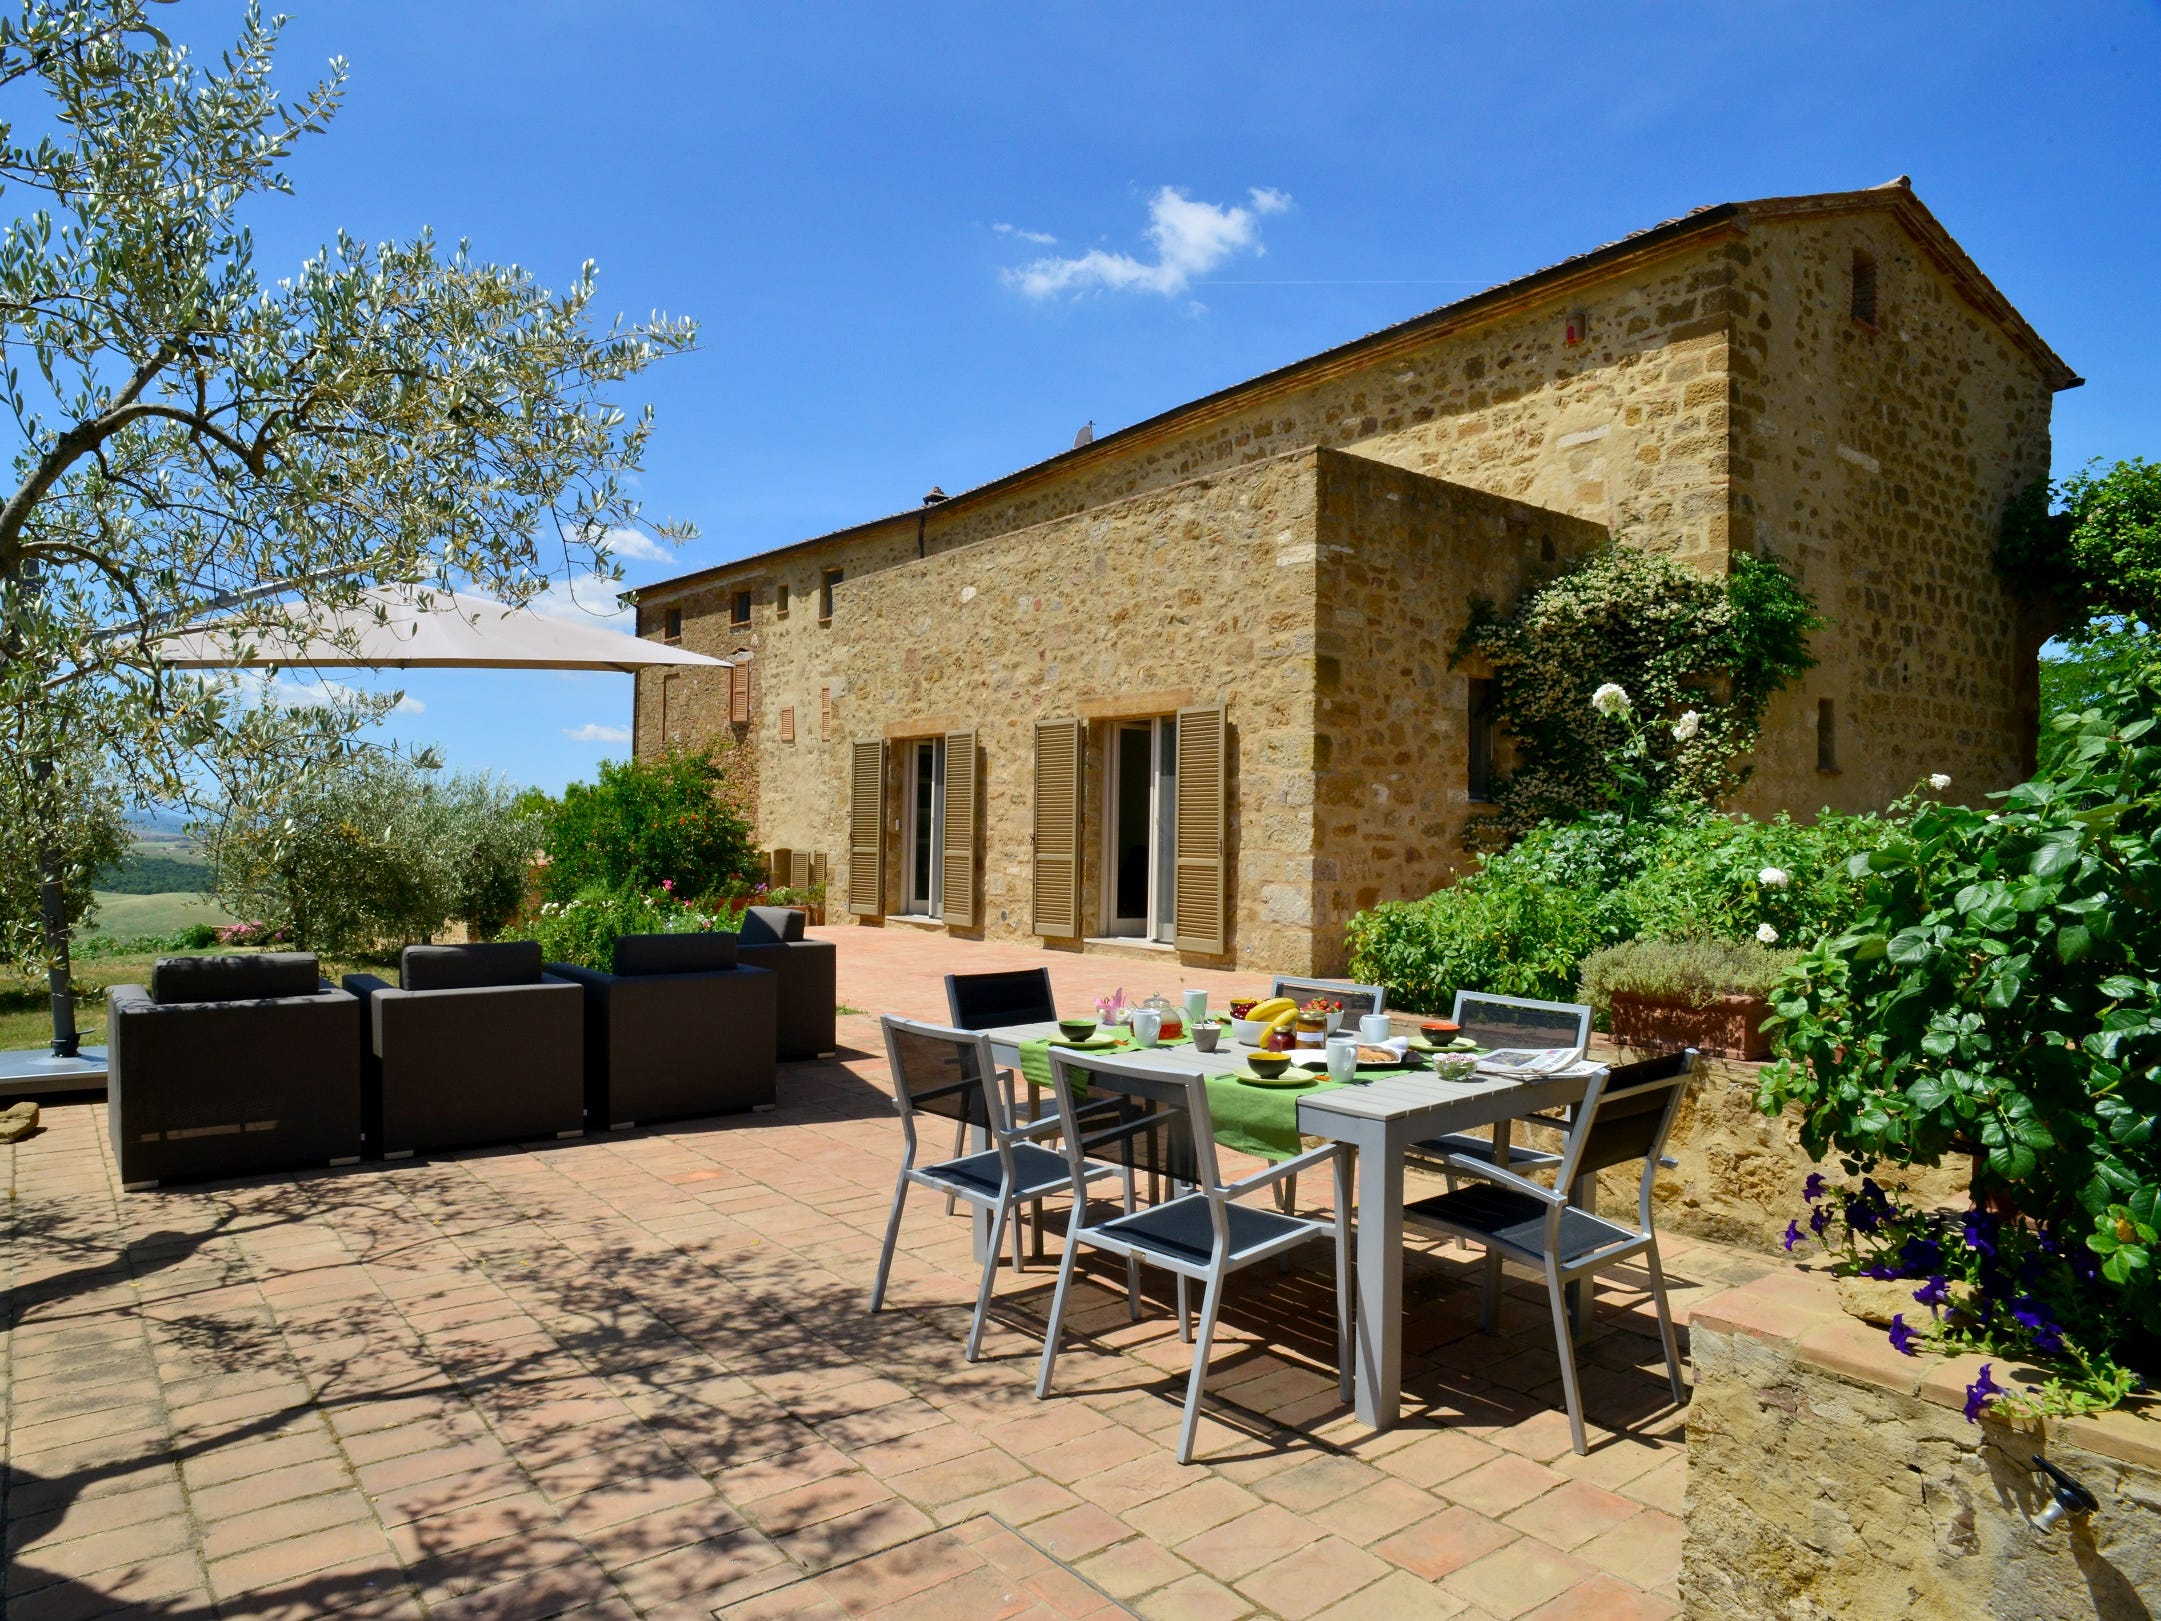 This villa near Siena has 4 bedrooms and 4.5 baths.